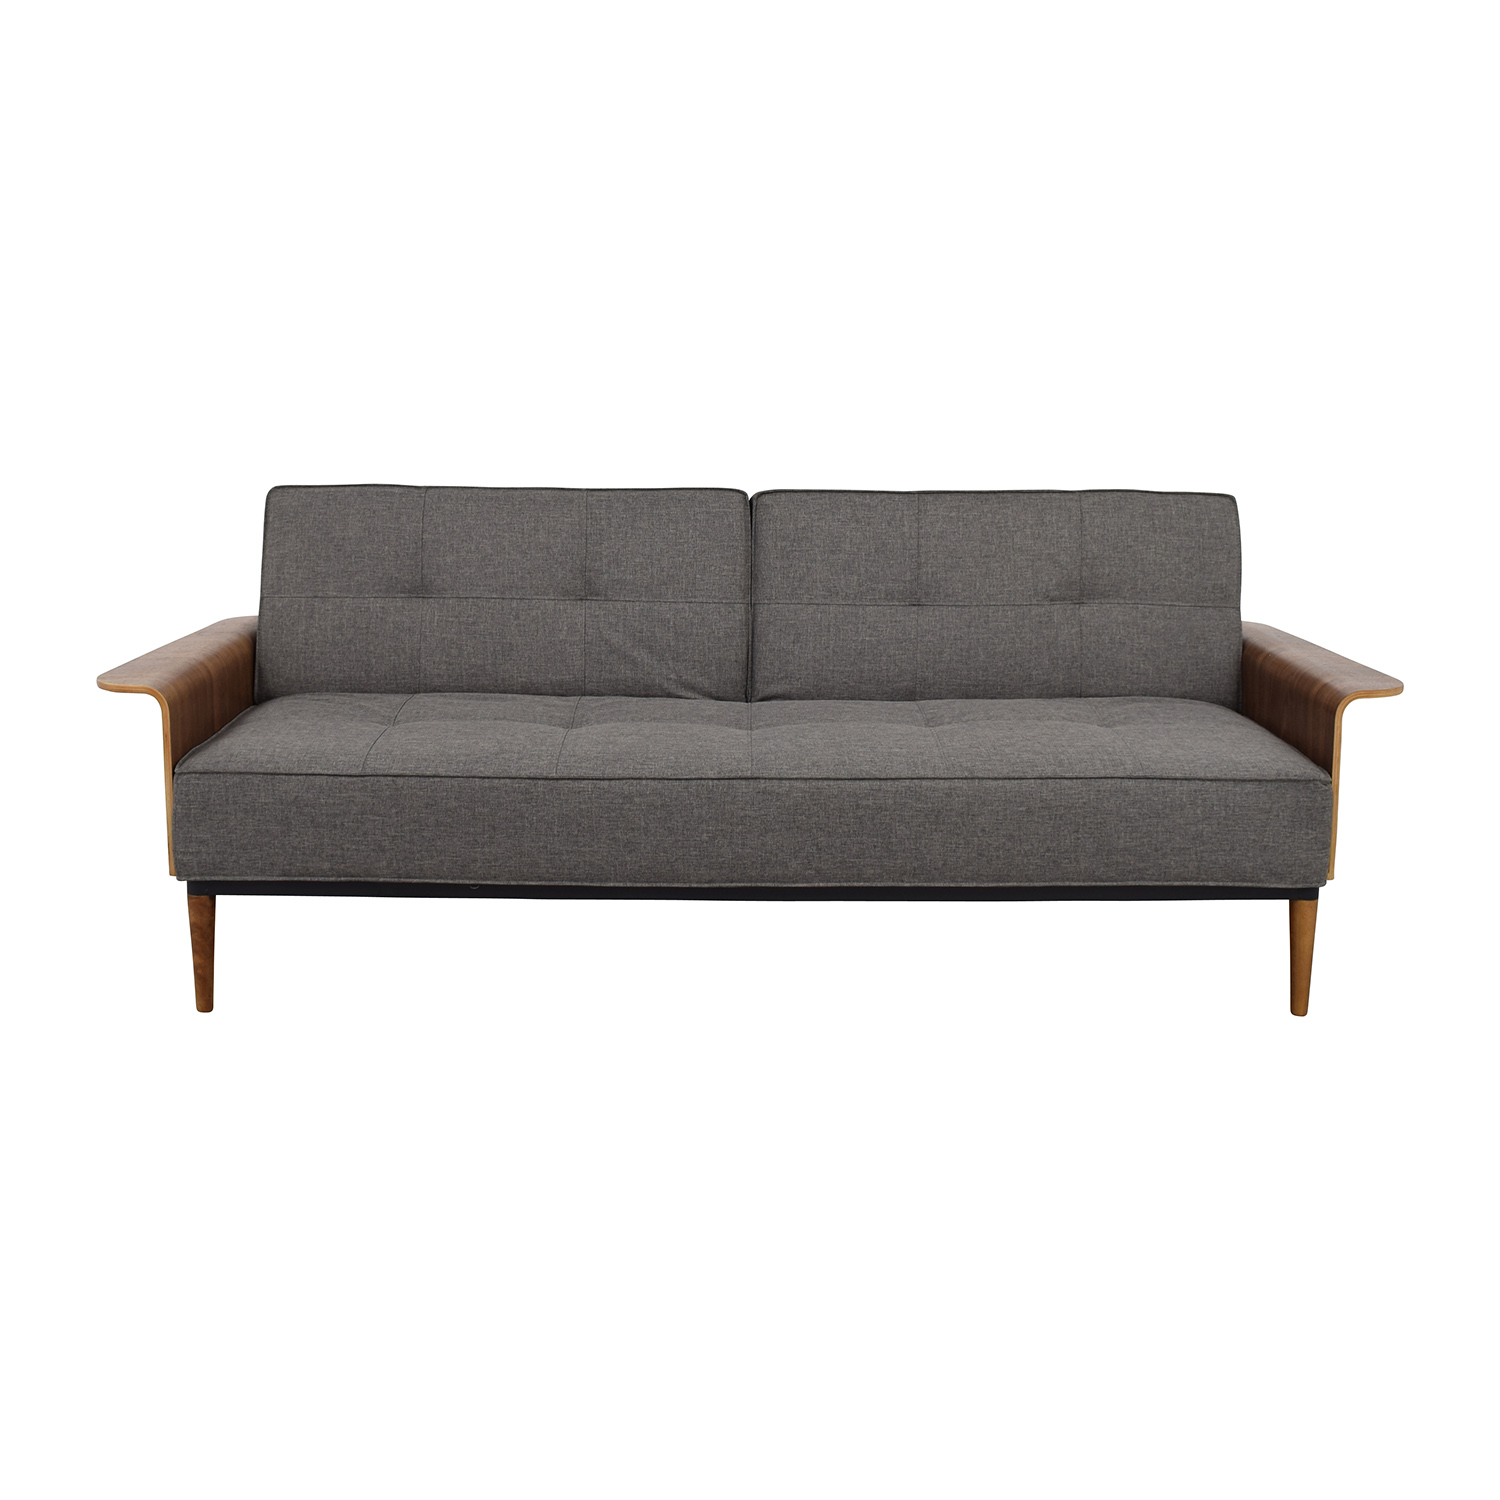 Inmod Bjorg Tufted Dark Grey Sofabed sale